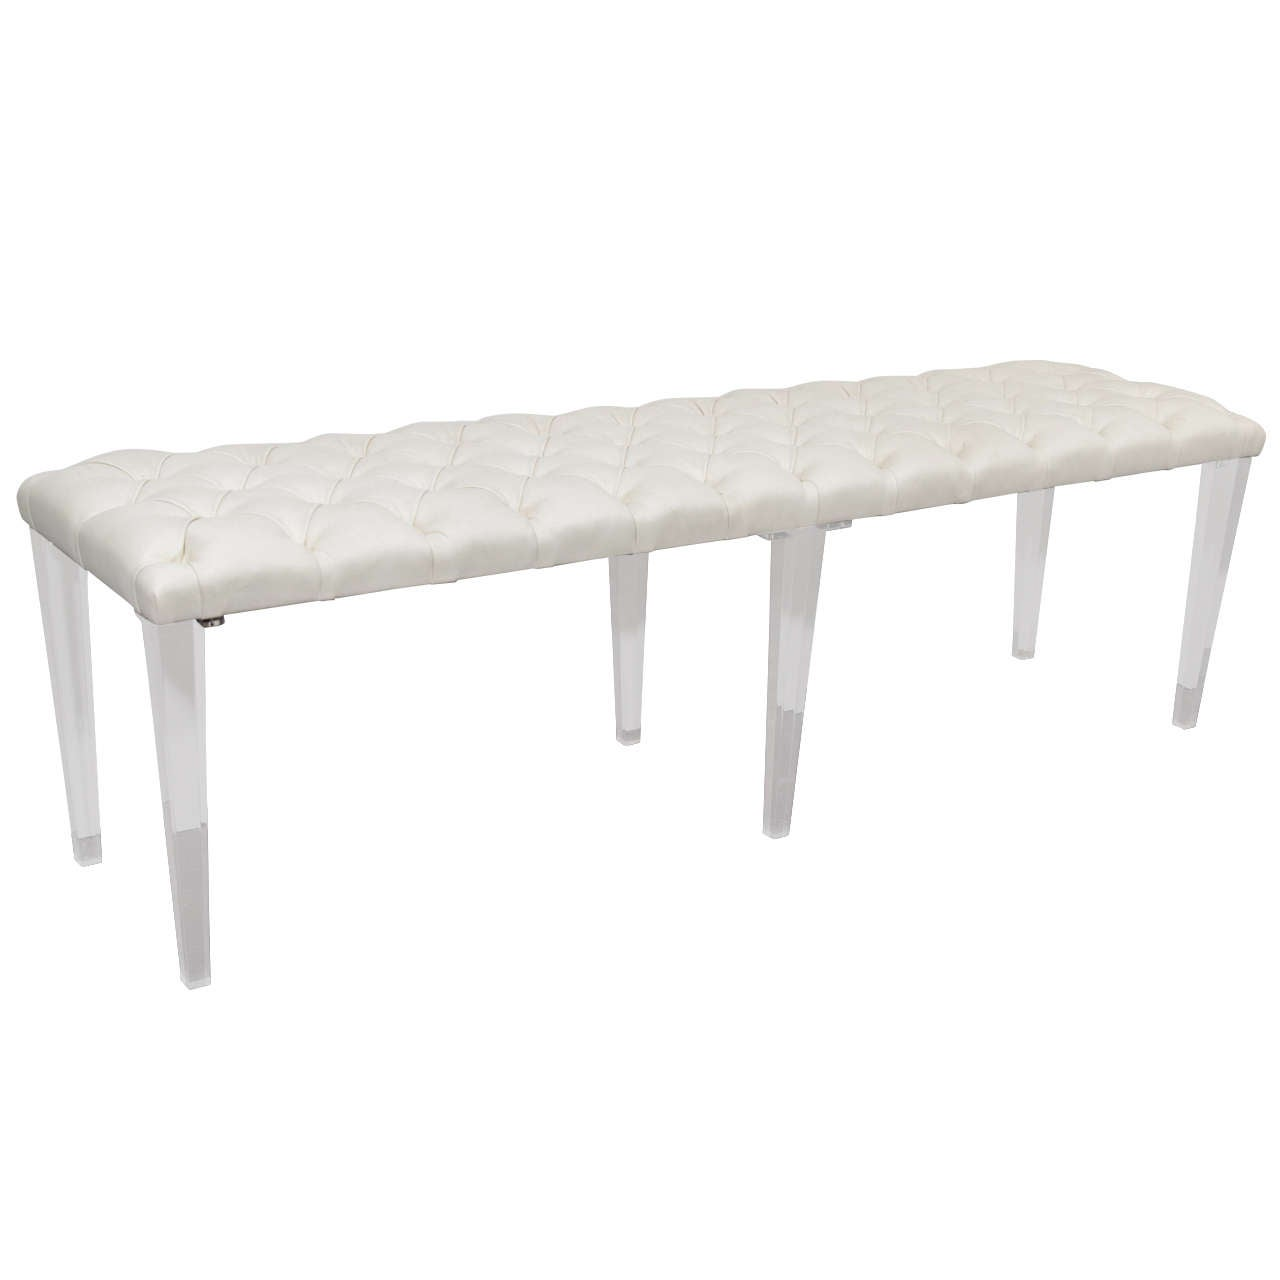 Custom Tufted Leather With Lucite Leg Bench For Sale At 1stdibs